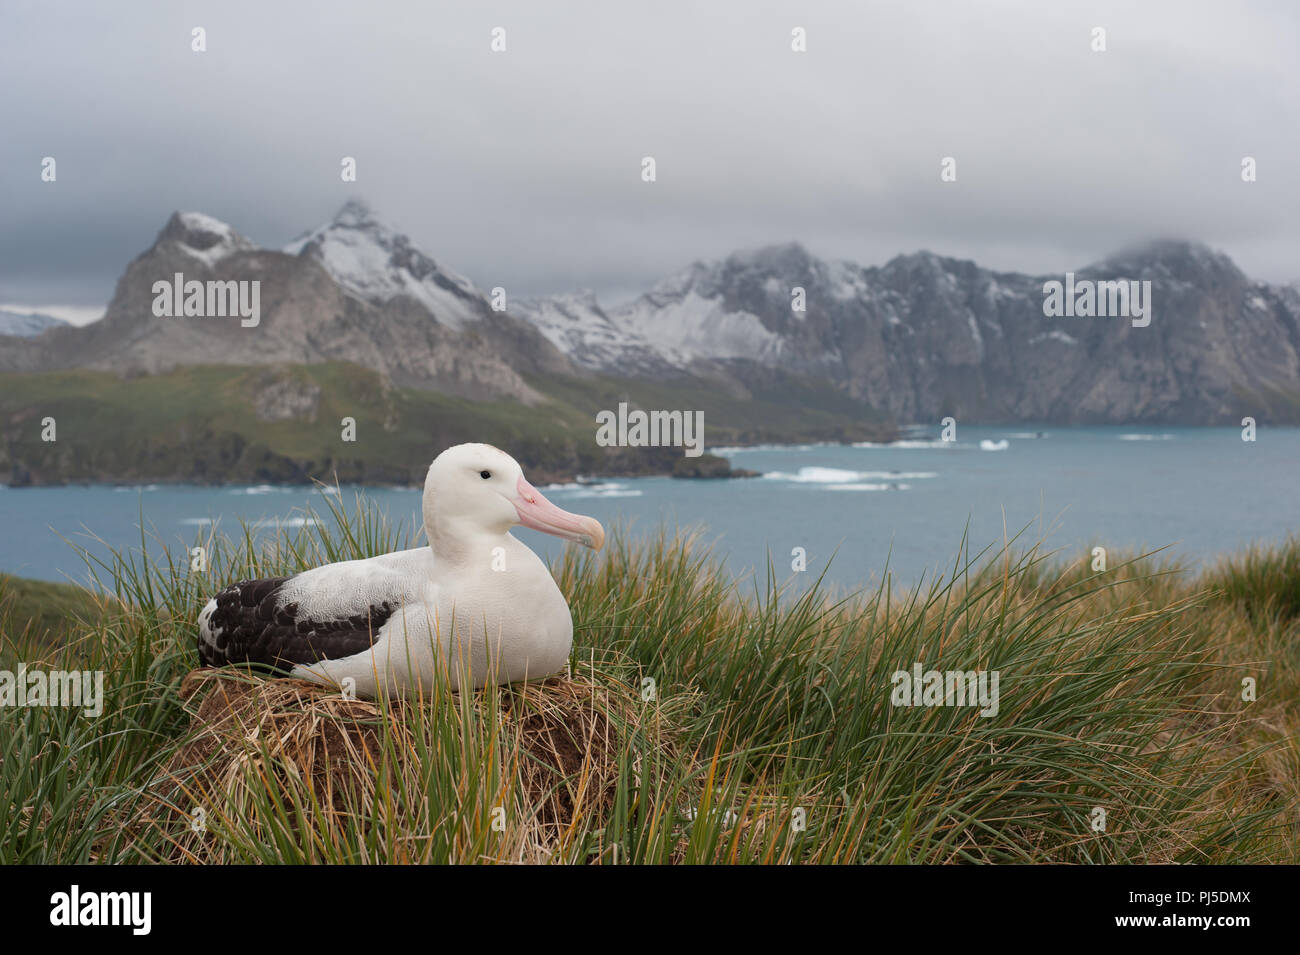 A female Wandering Albatross (Diomedia exulans) nesting on Bird island, South Georgia in the sub-Antarctic - Stock Image